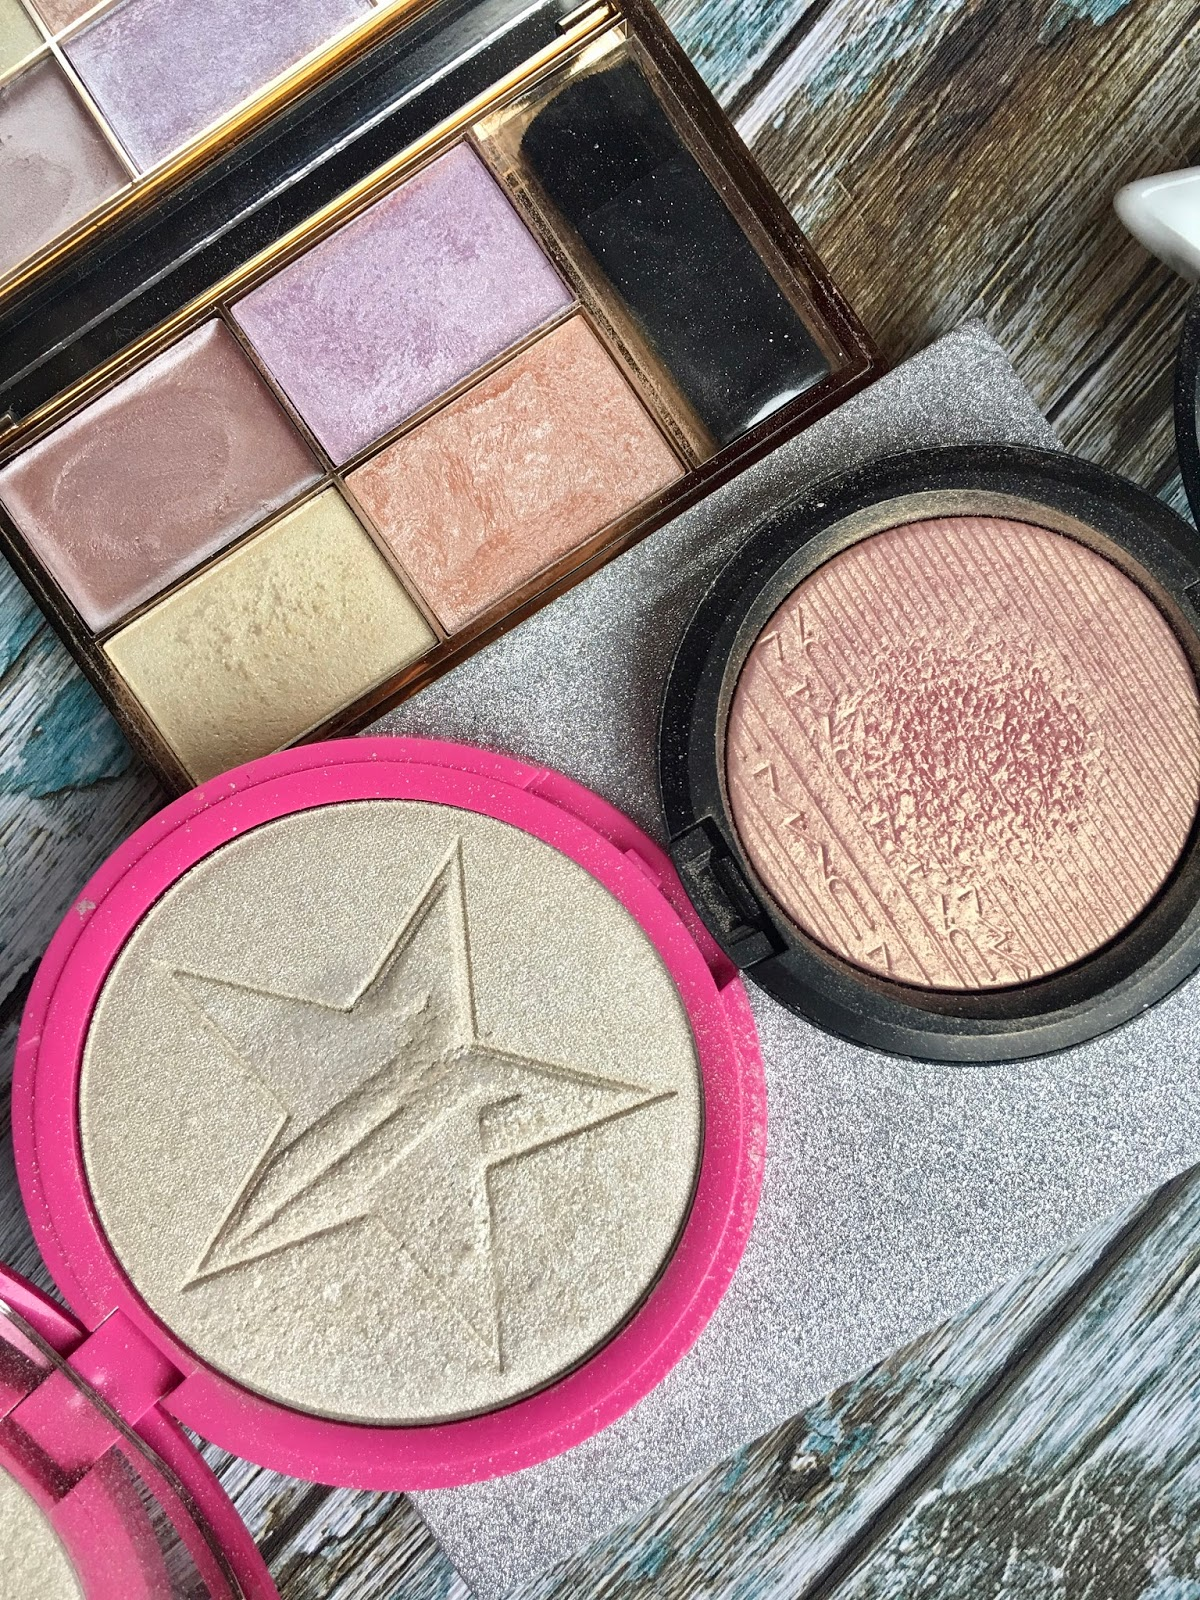 highlighter for pale skin and swatches, jeffree star, loreal, urban decay